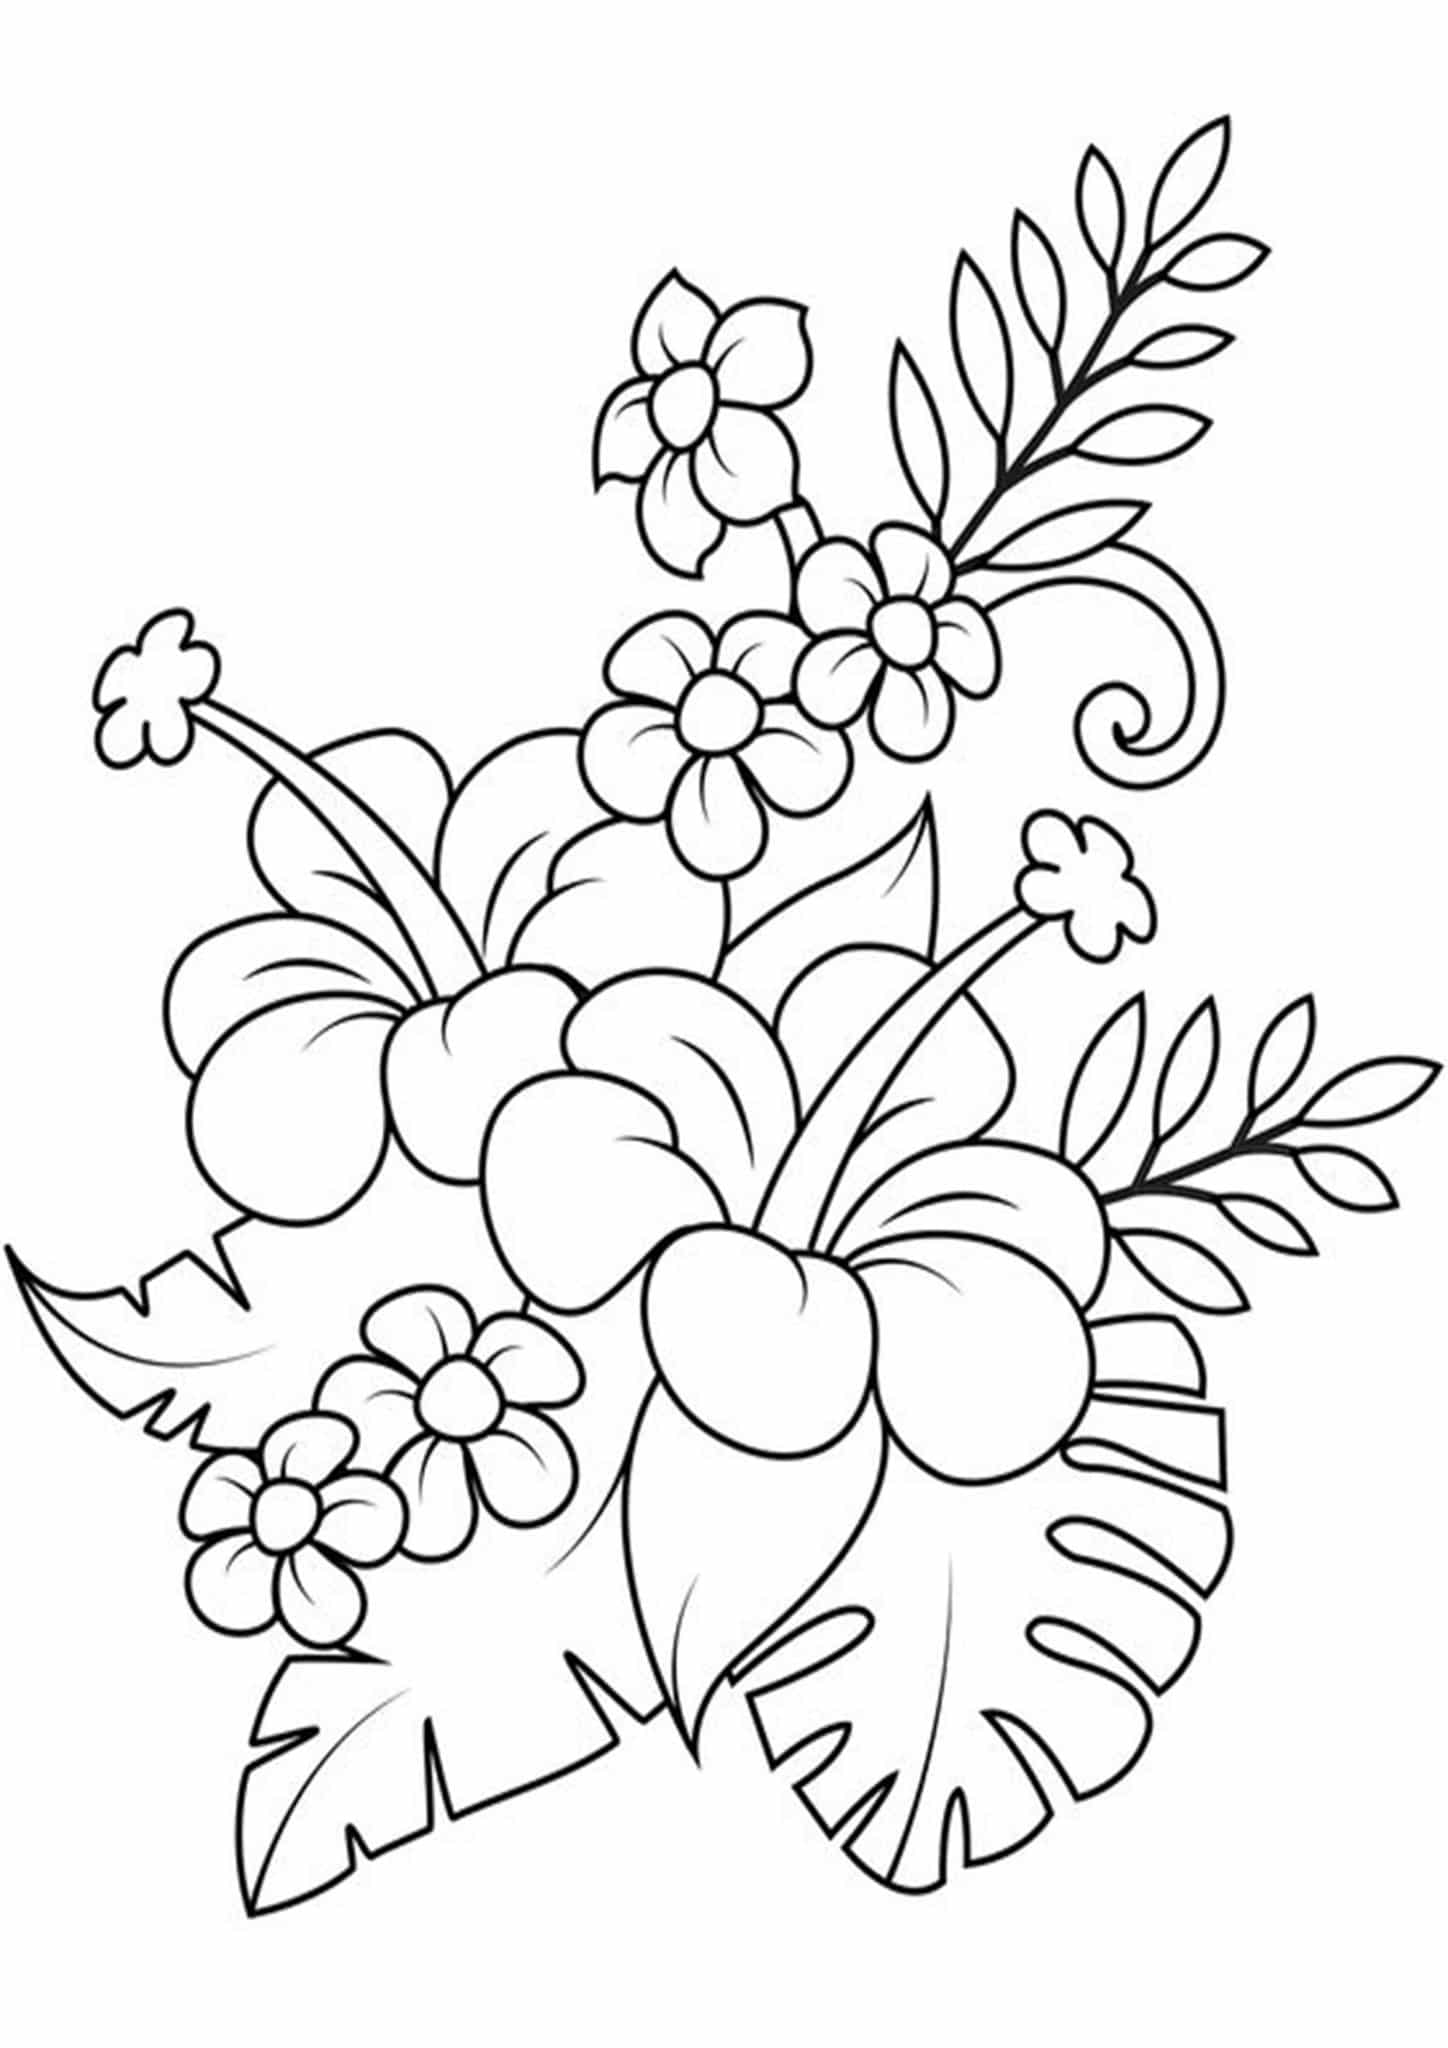 pictures of flowers to color free printable flower coloring pages for kids best of pictures color flowers to